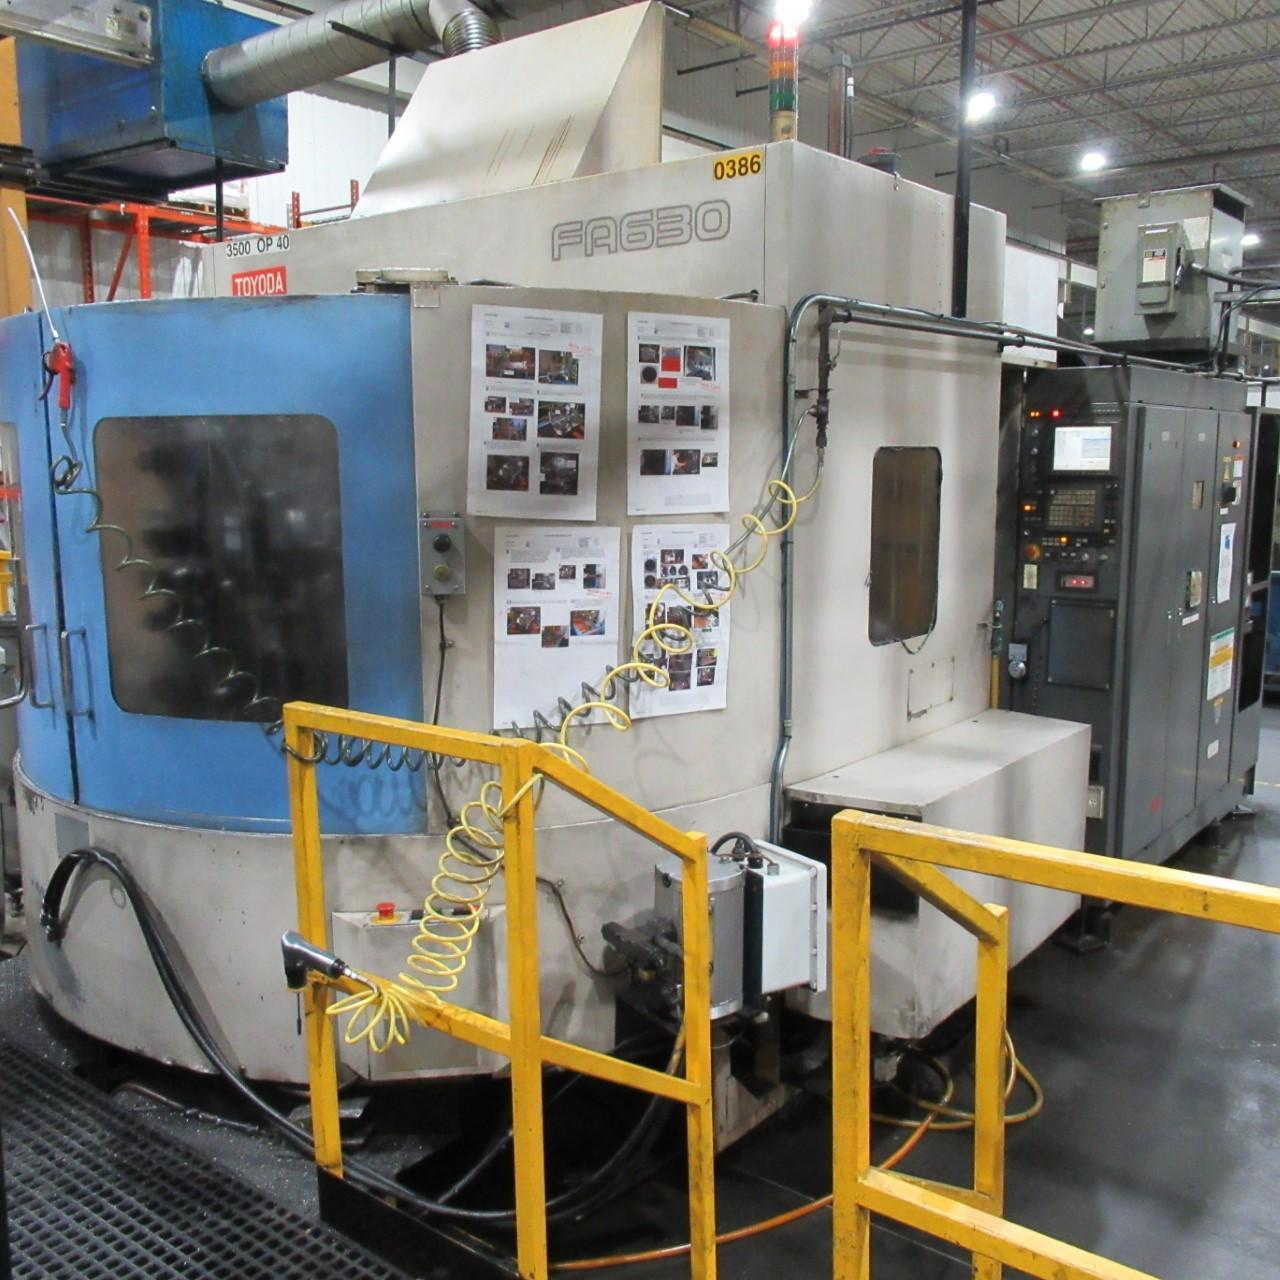 TOYODA FA-630 HORIZONTAL MACHINING CENTER, HIGH PRESSURE THROUGH SPINDLE COOLANT, YEAR 2004 (4 Machines Available)